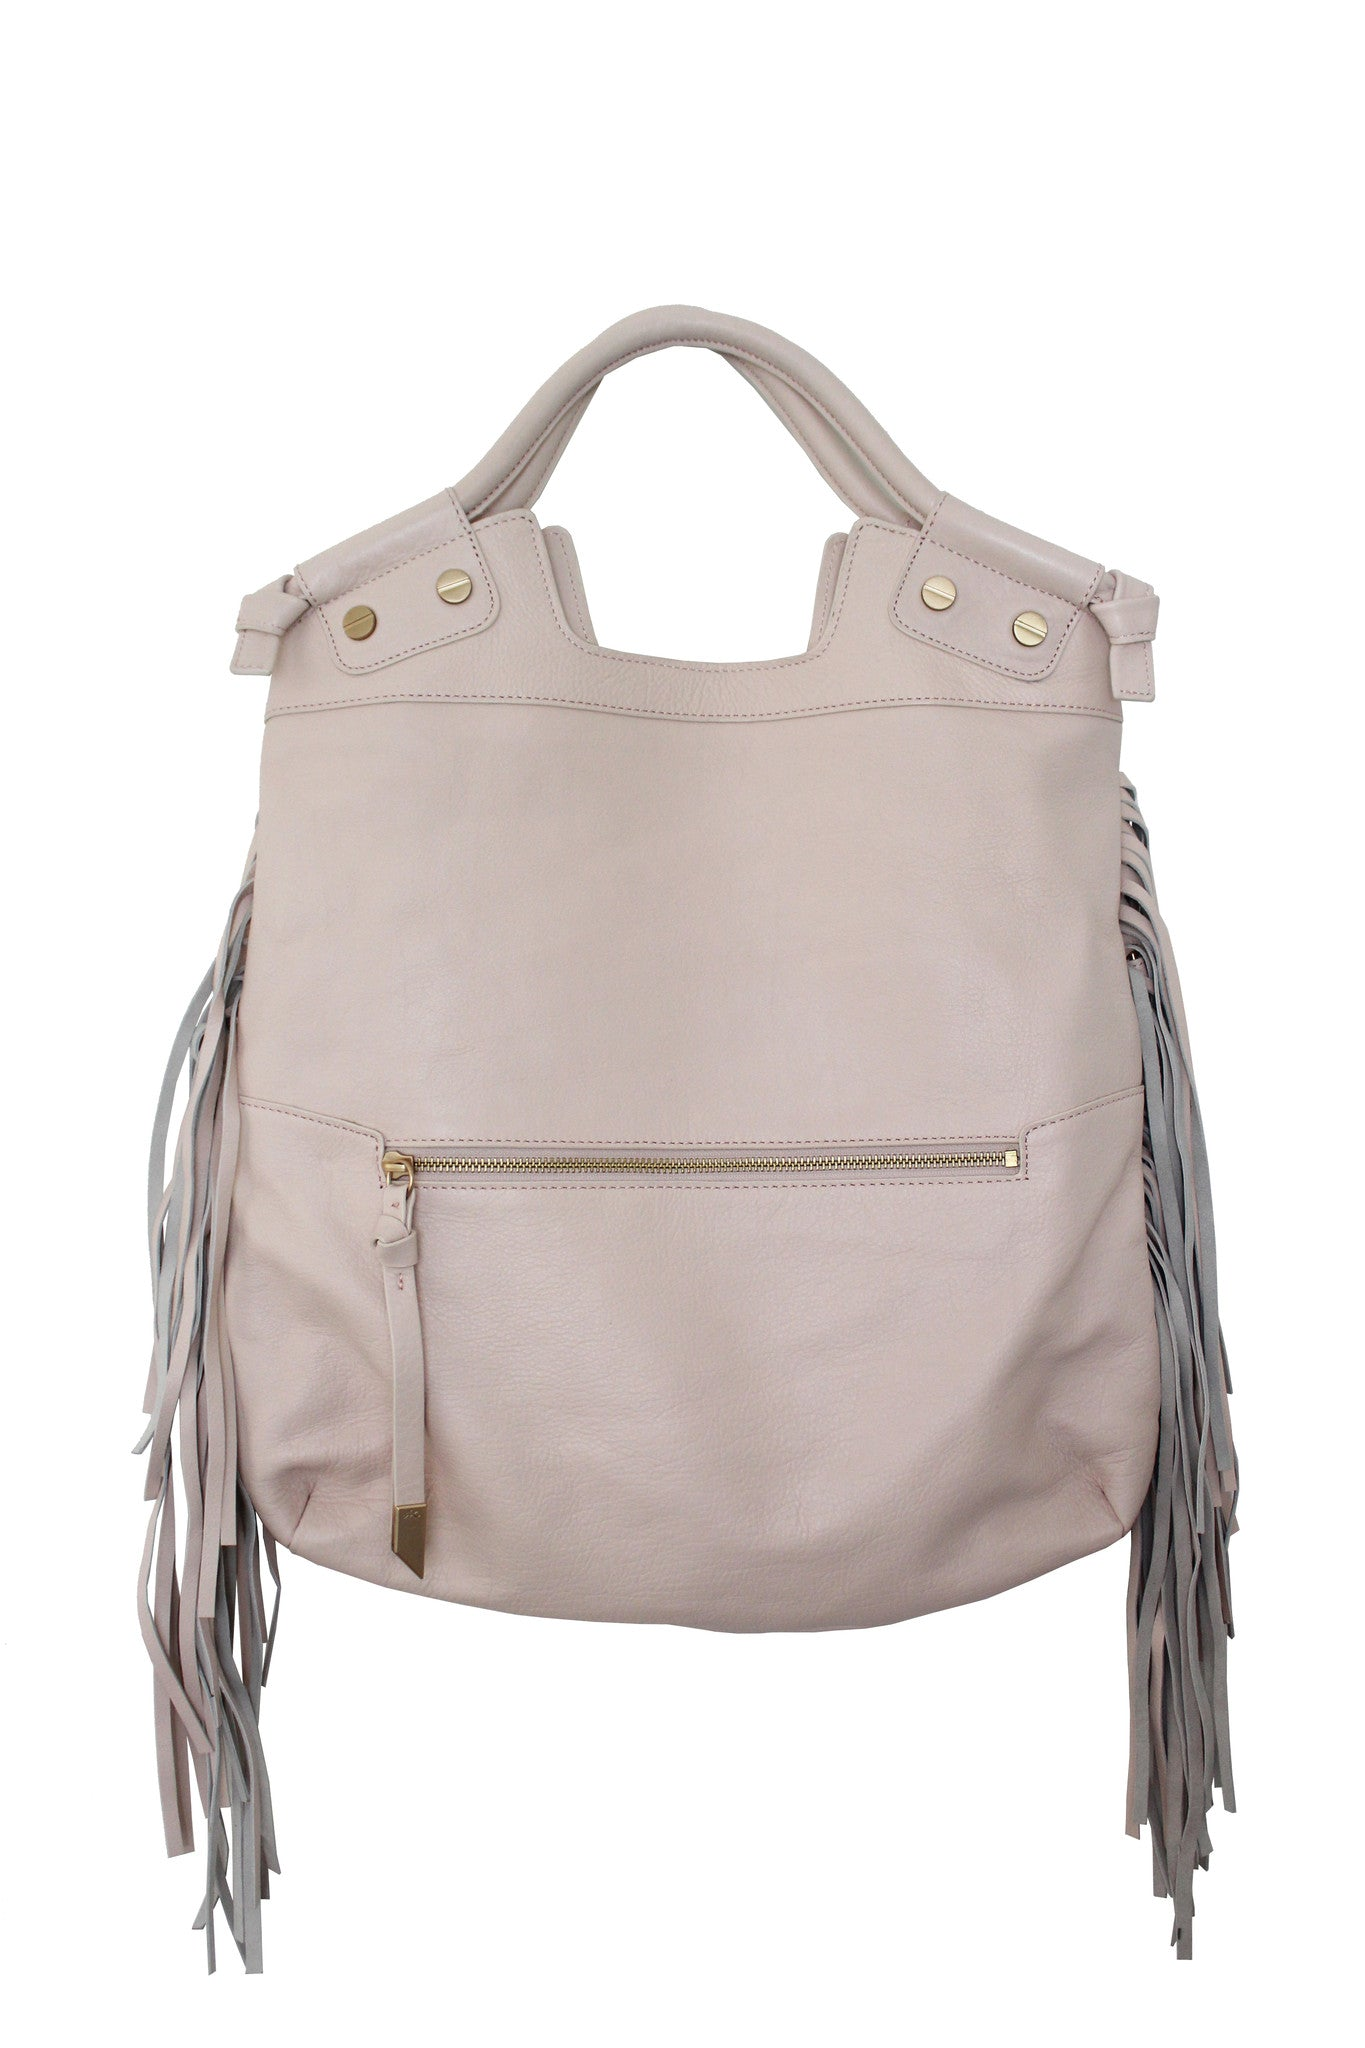 SASHA CITY TOTE IN CRUSH